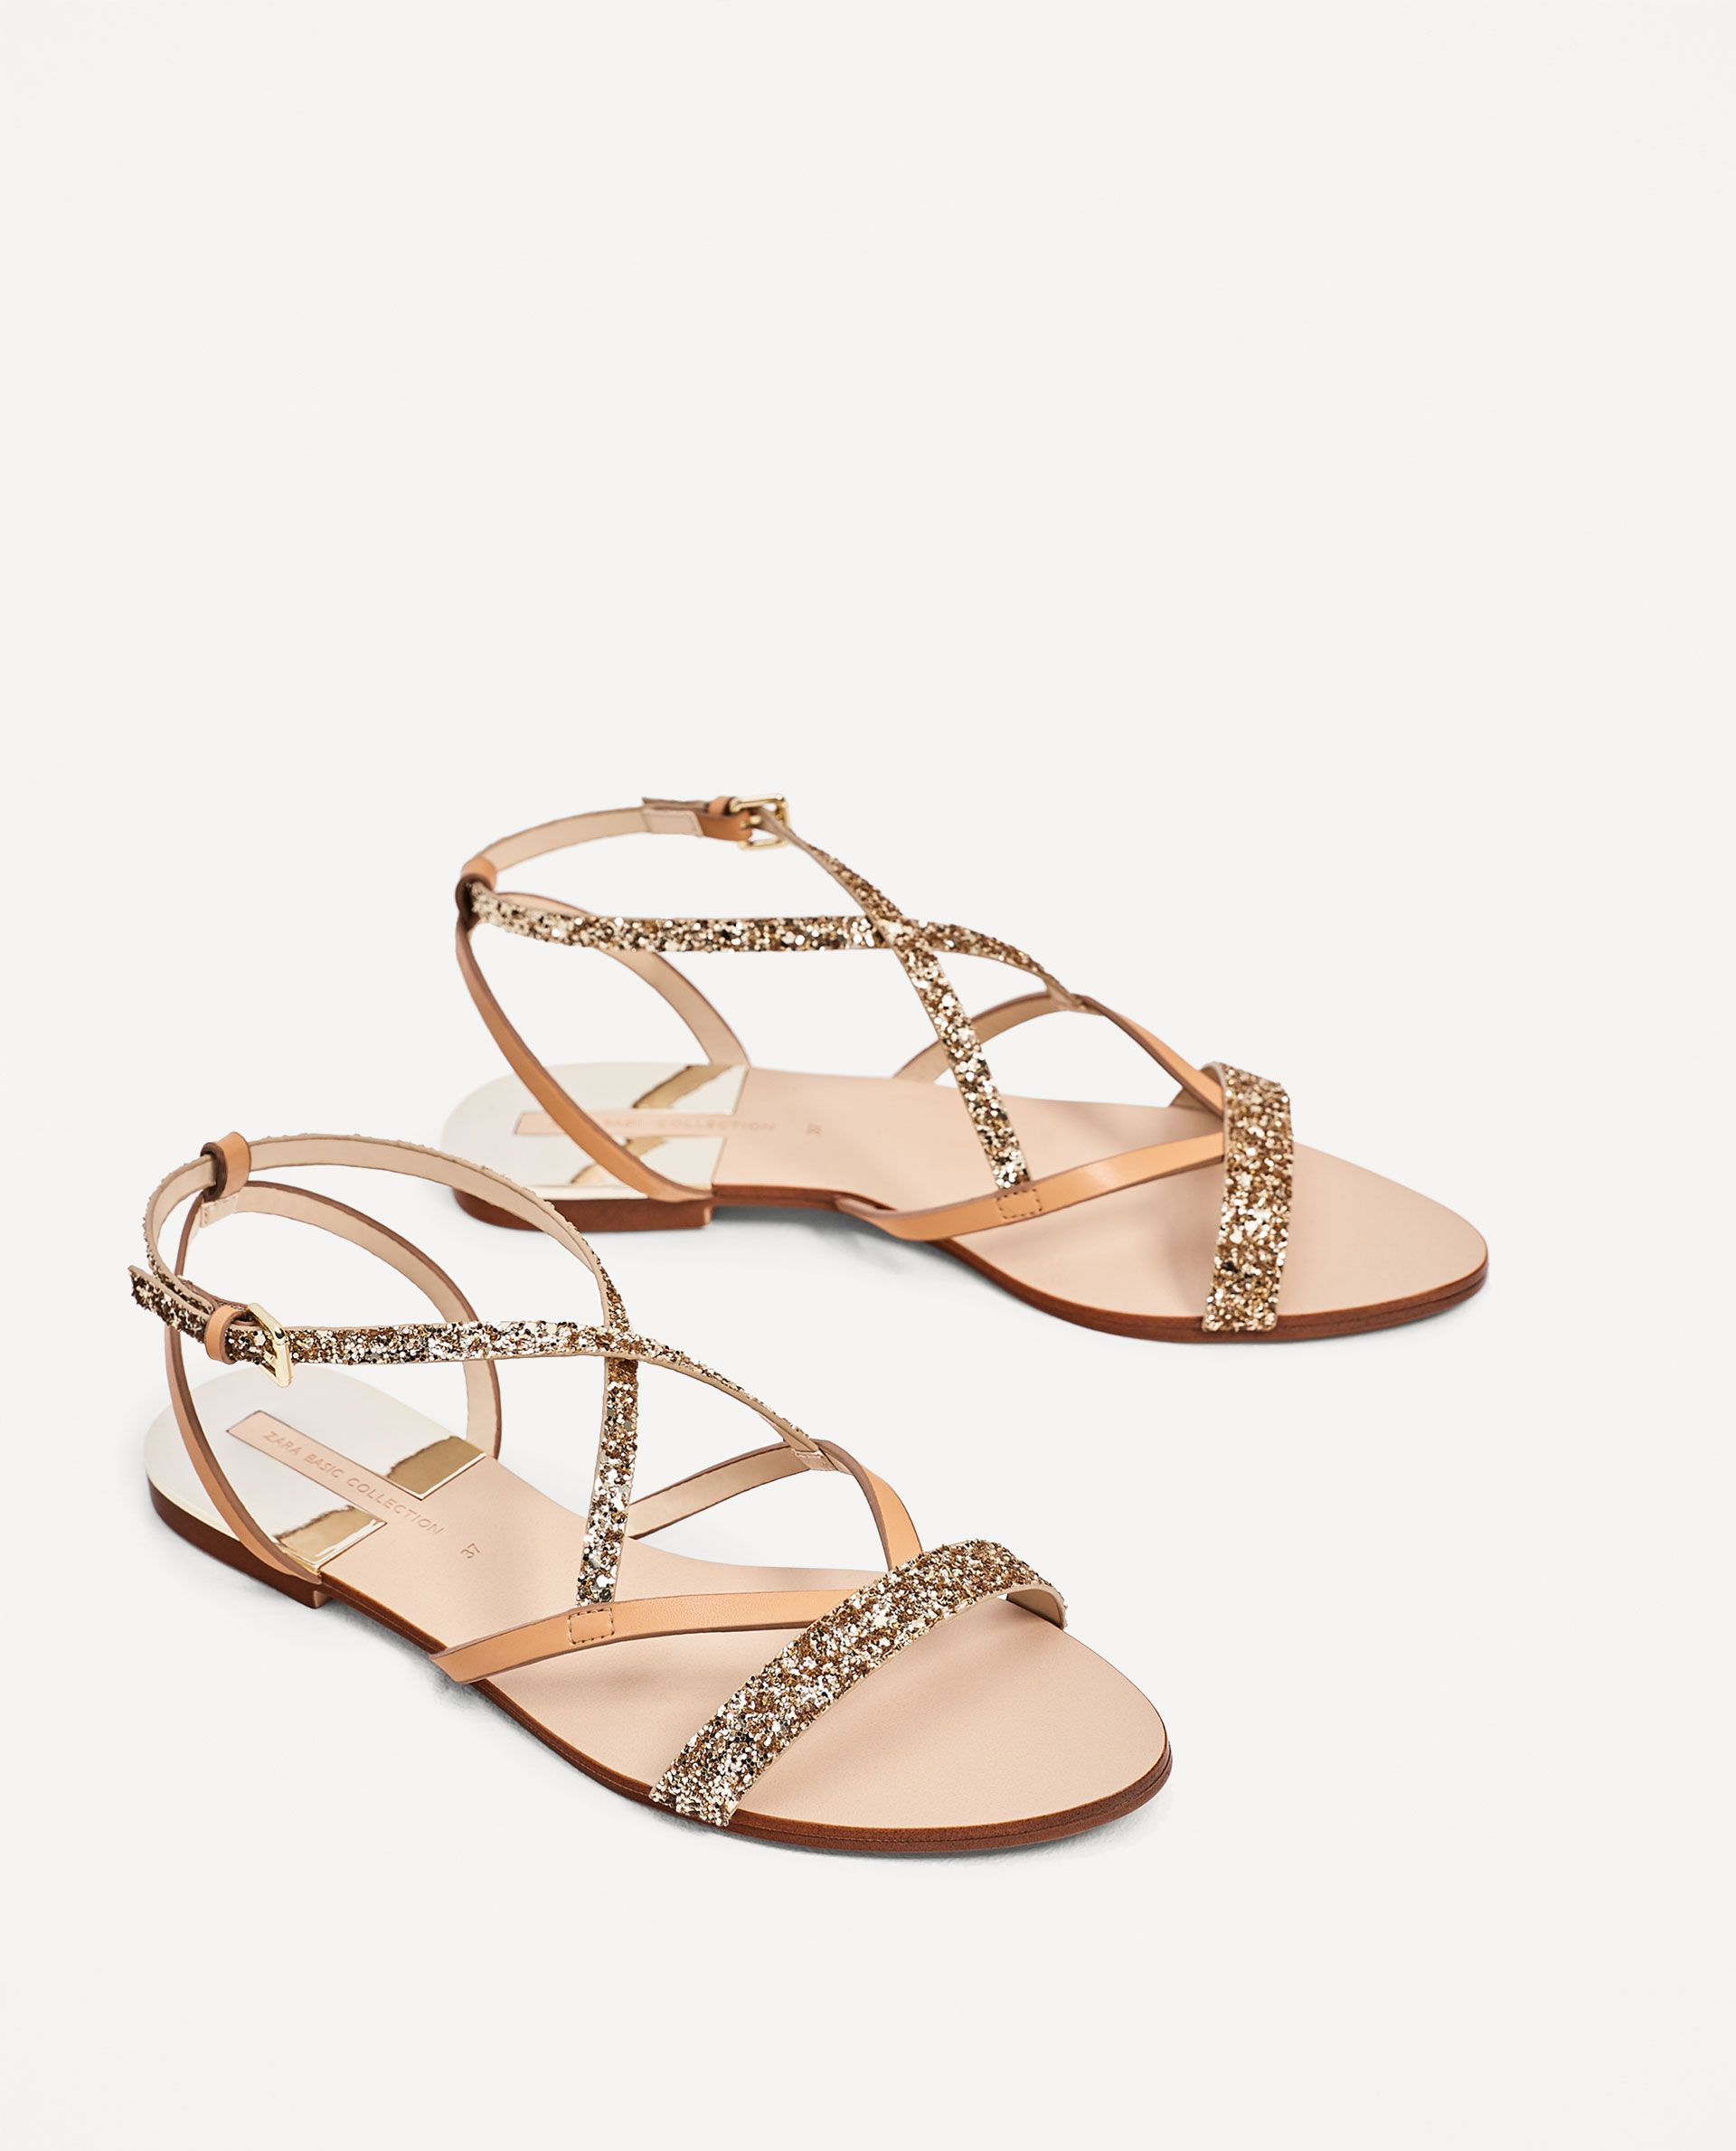 Straps Sandals Flat With Woman Zara Shiny Fcl1JTK3